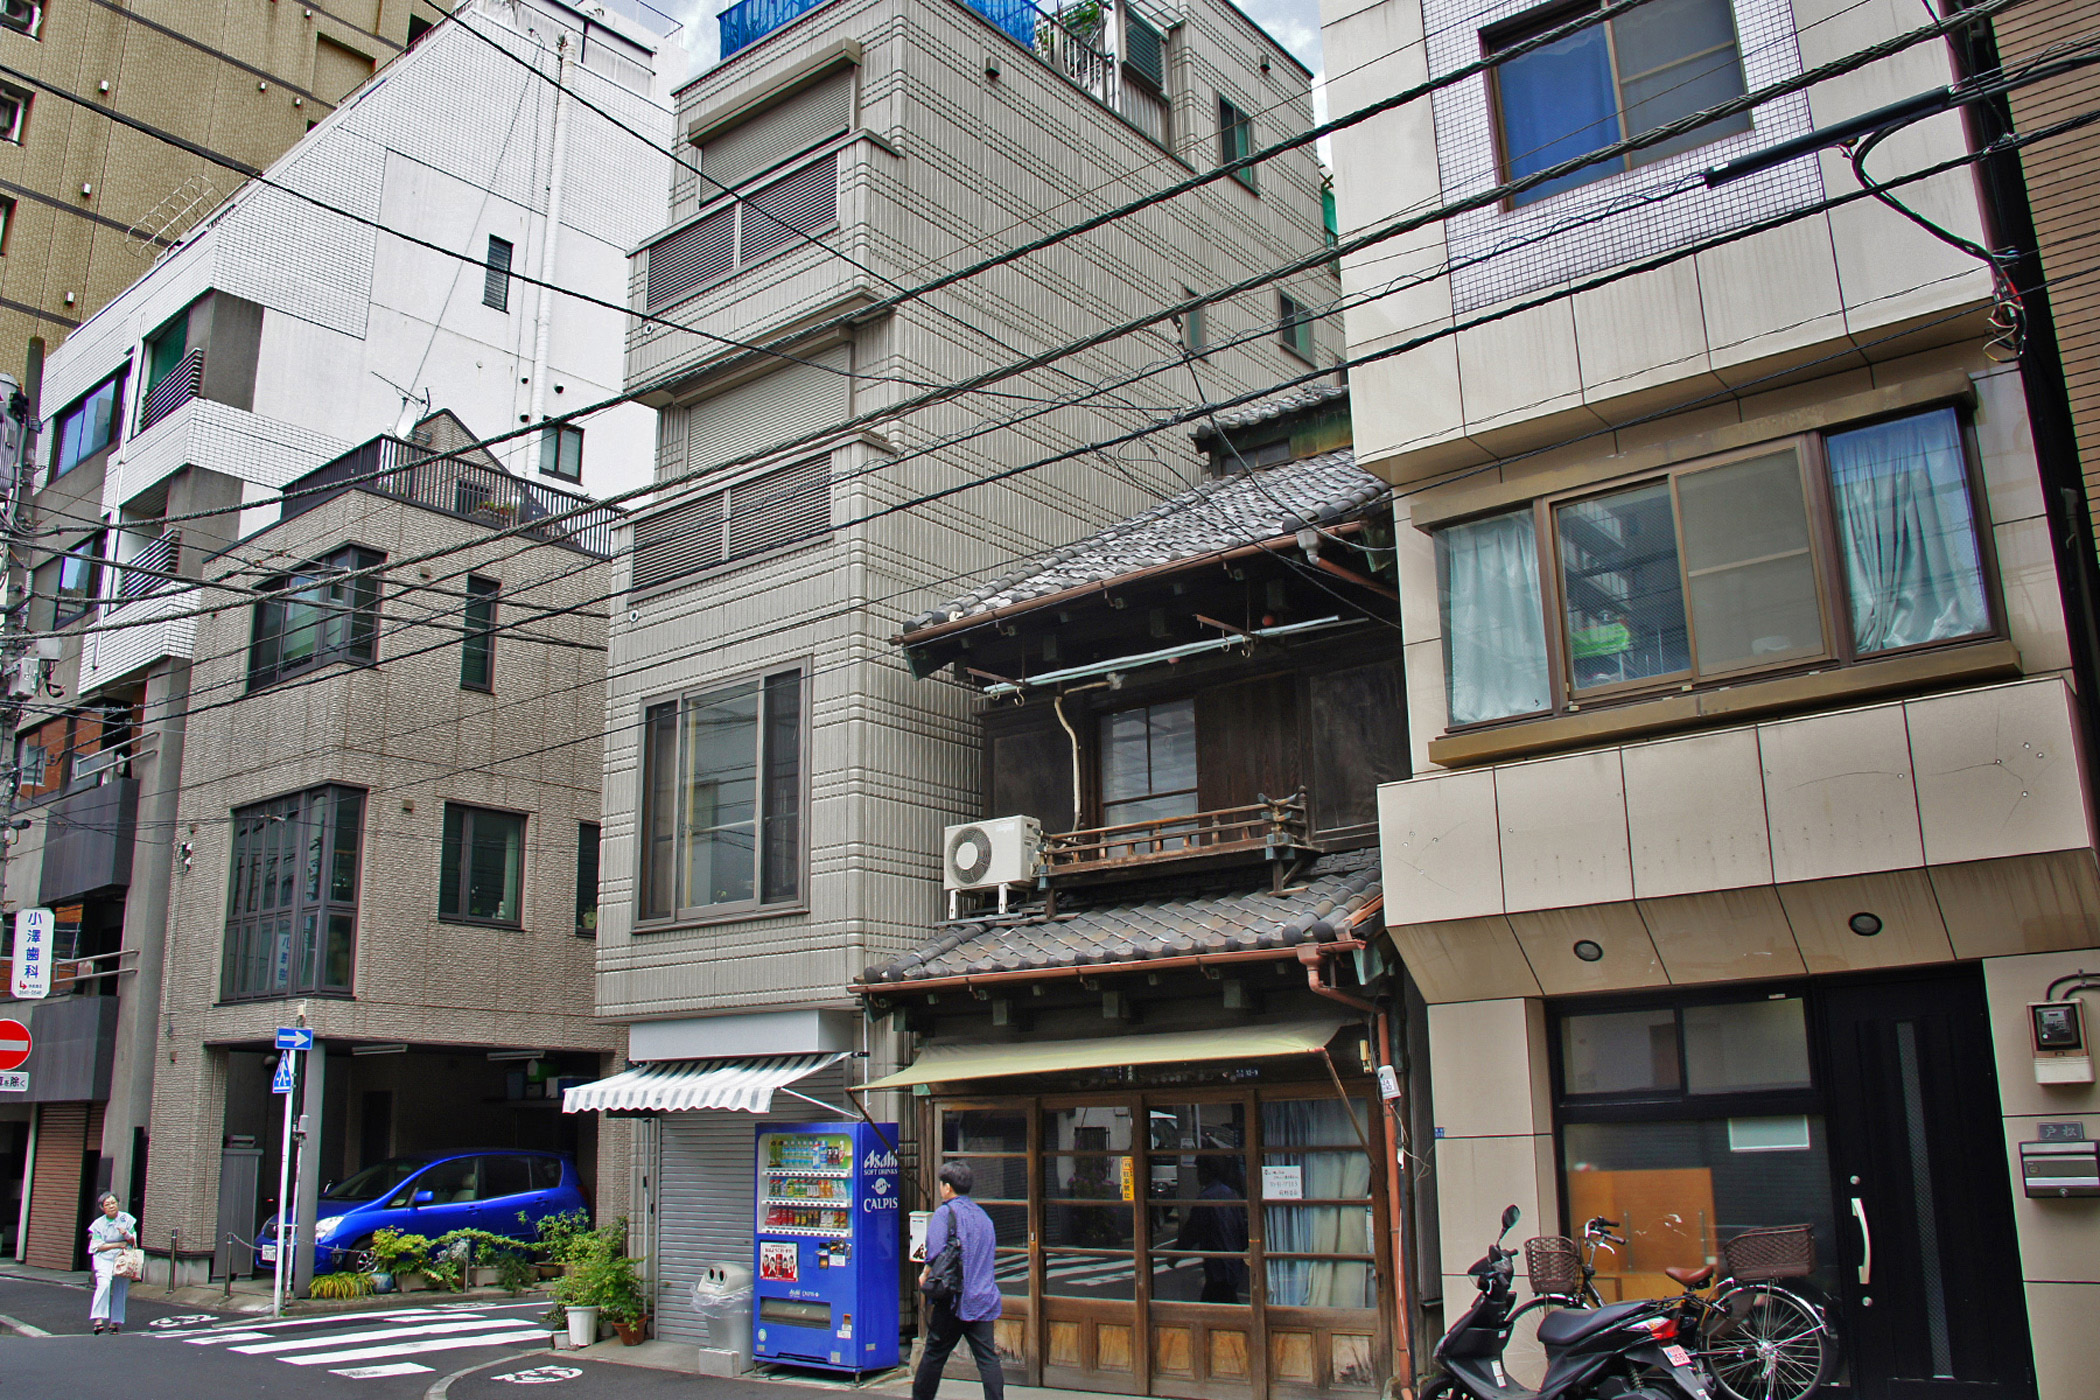 Japan, Early Twentieth                               Century Architecture                               in Tsukiji: The relocation of the Tsukiji fish market ahead of the 2020 Olympic Games warns of redevelopment pressures for some of the last remaining markers of Tsukiji's historic twentieth century architecture.